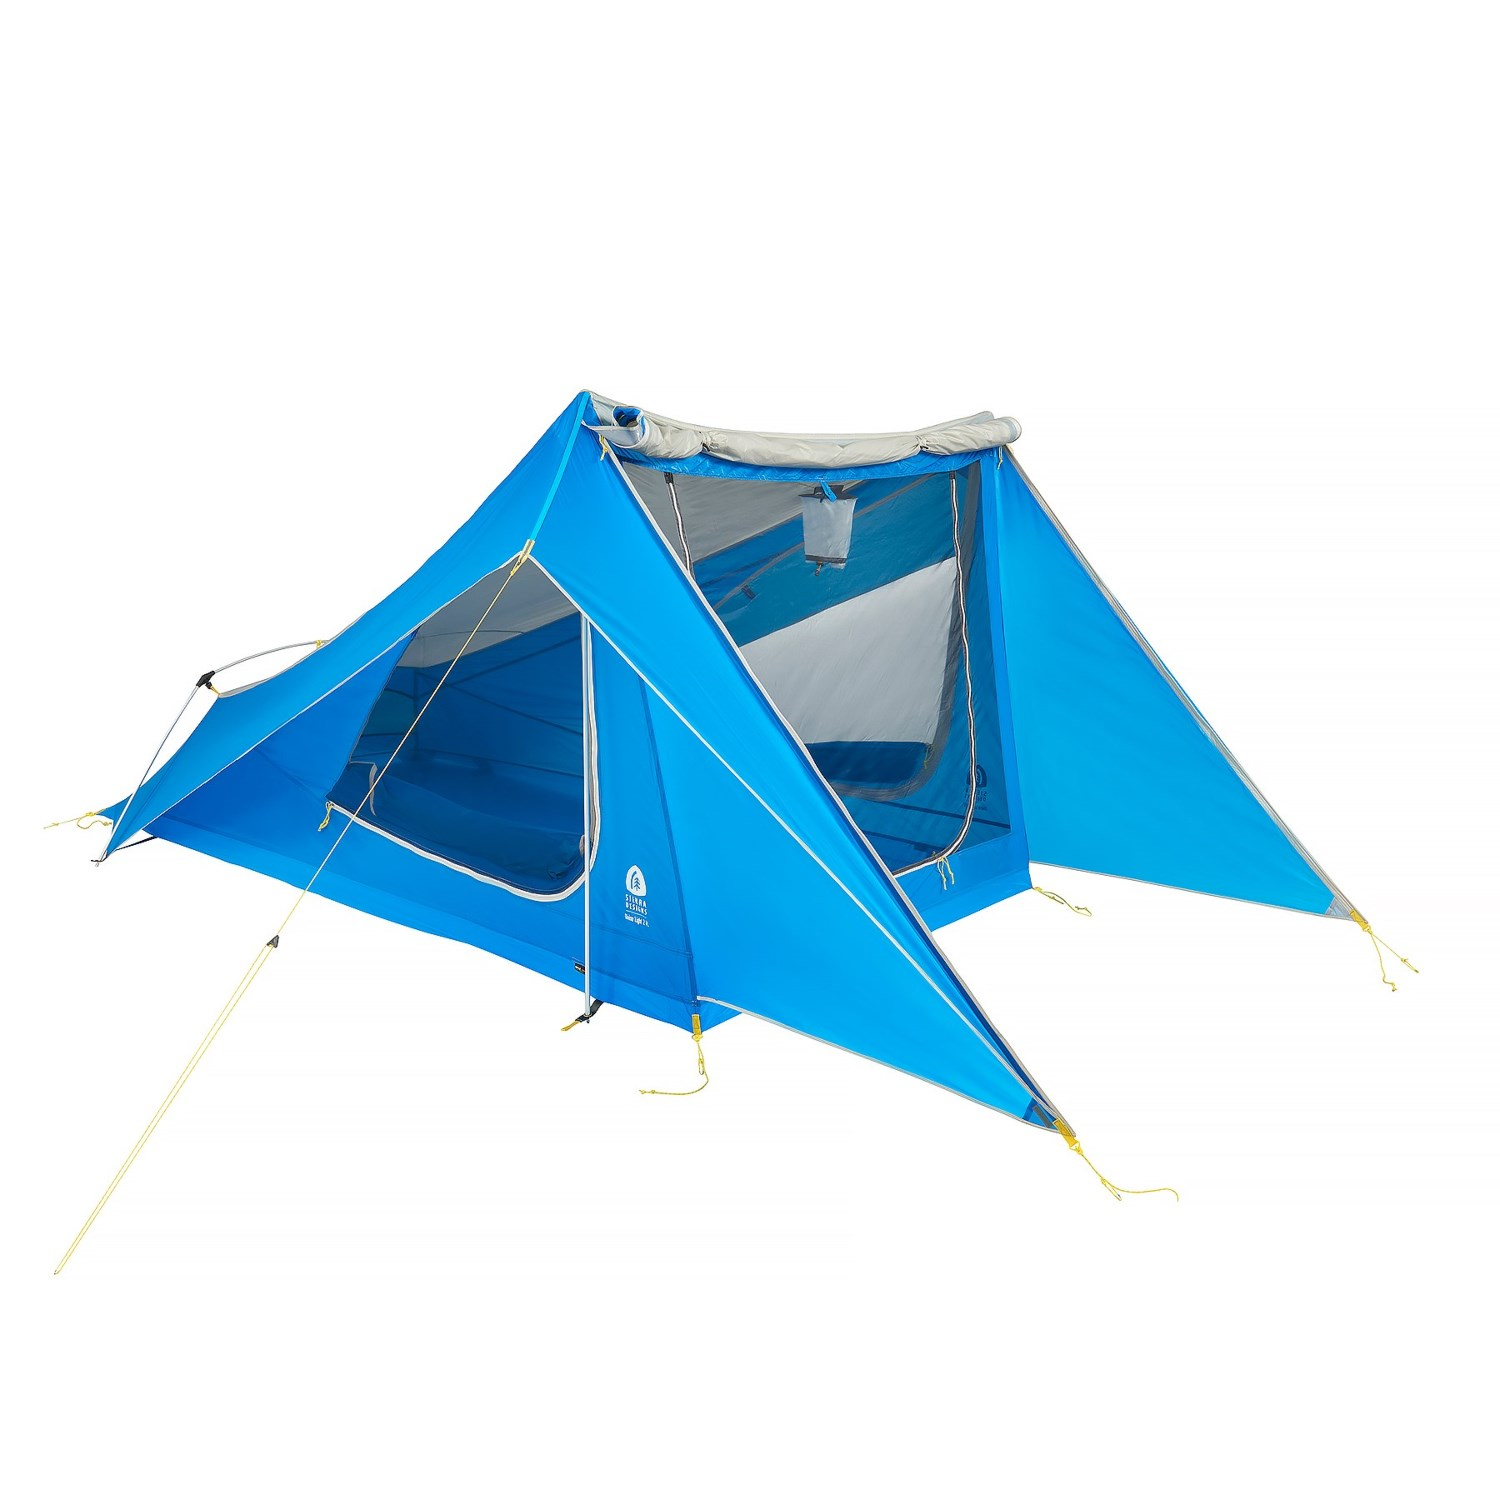 Sierra Designs Divine Light 2 FL Tent - 2-Person 3-Season  sc 1 st  Sierra Trading Post & Sierra Designs Divine Light 2 FL Tent - 2-Person 3-Season - Save 41%